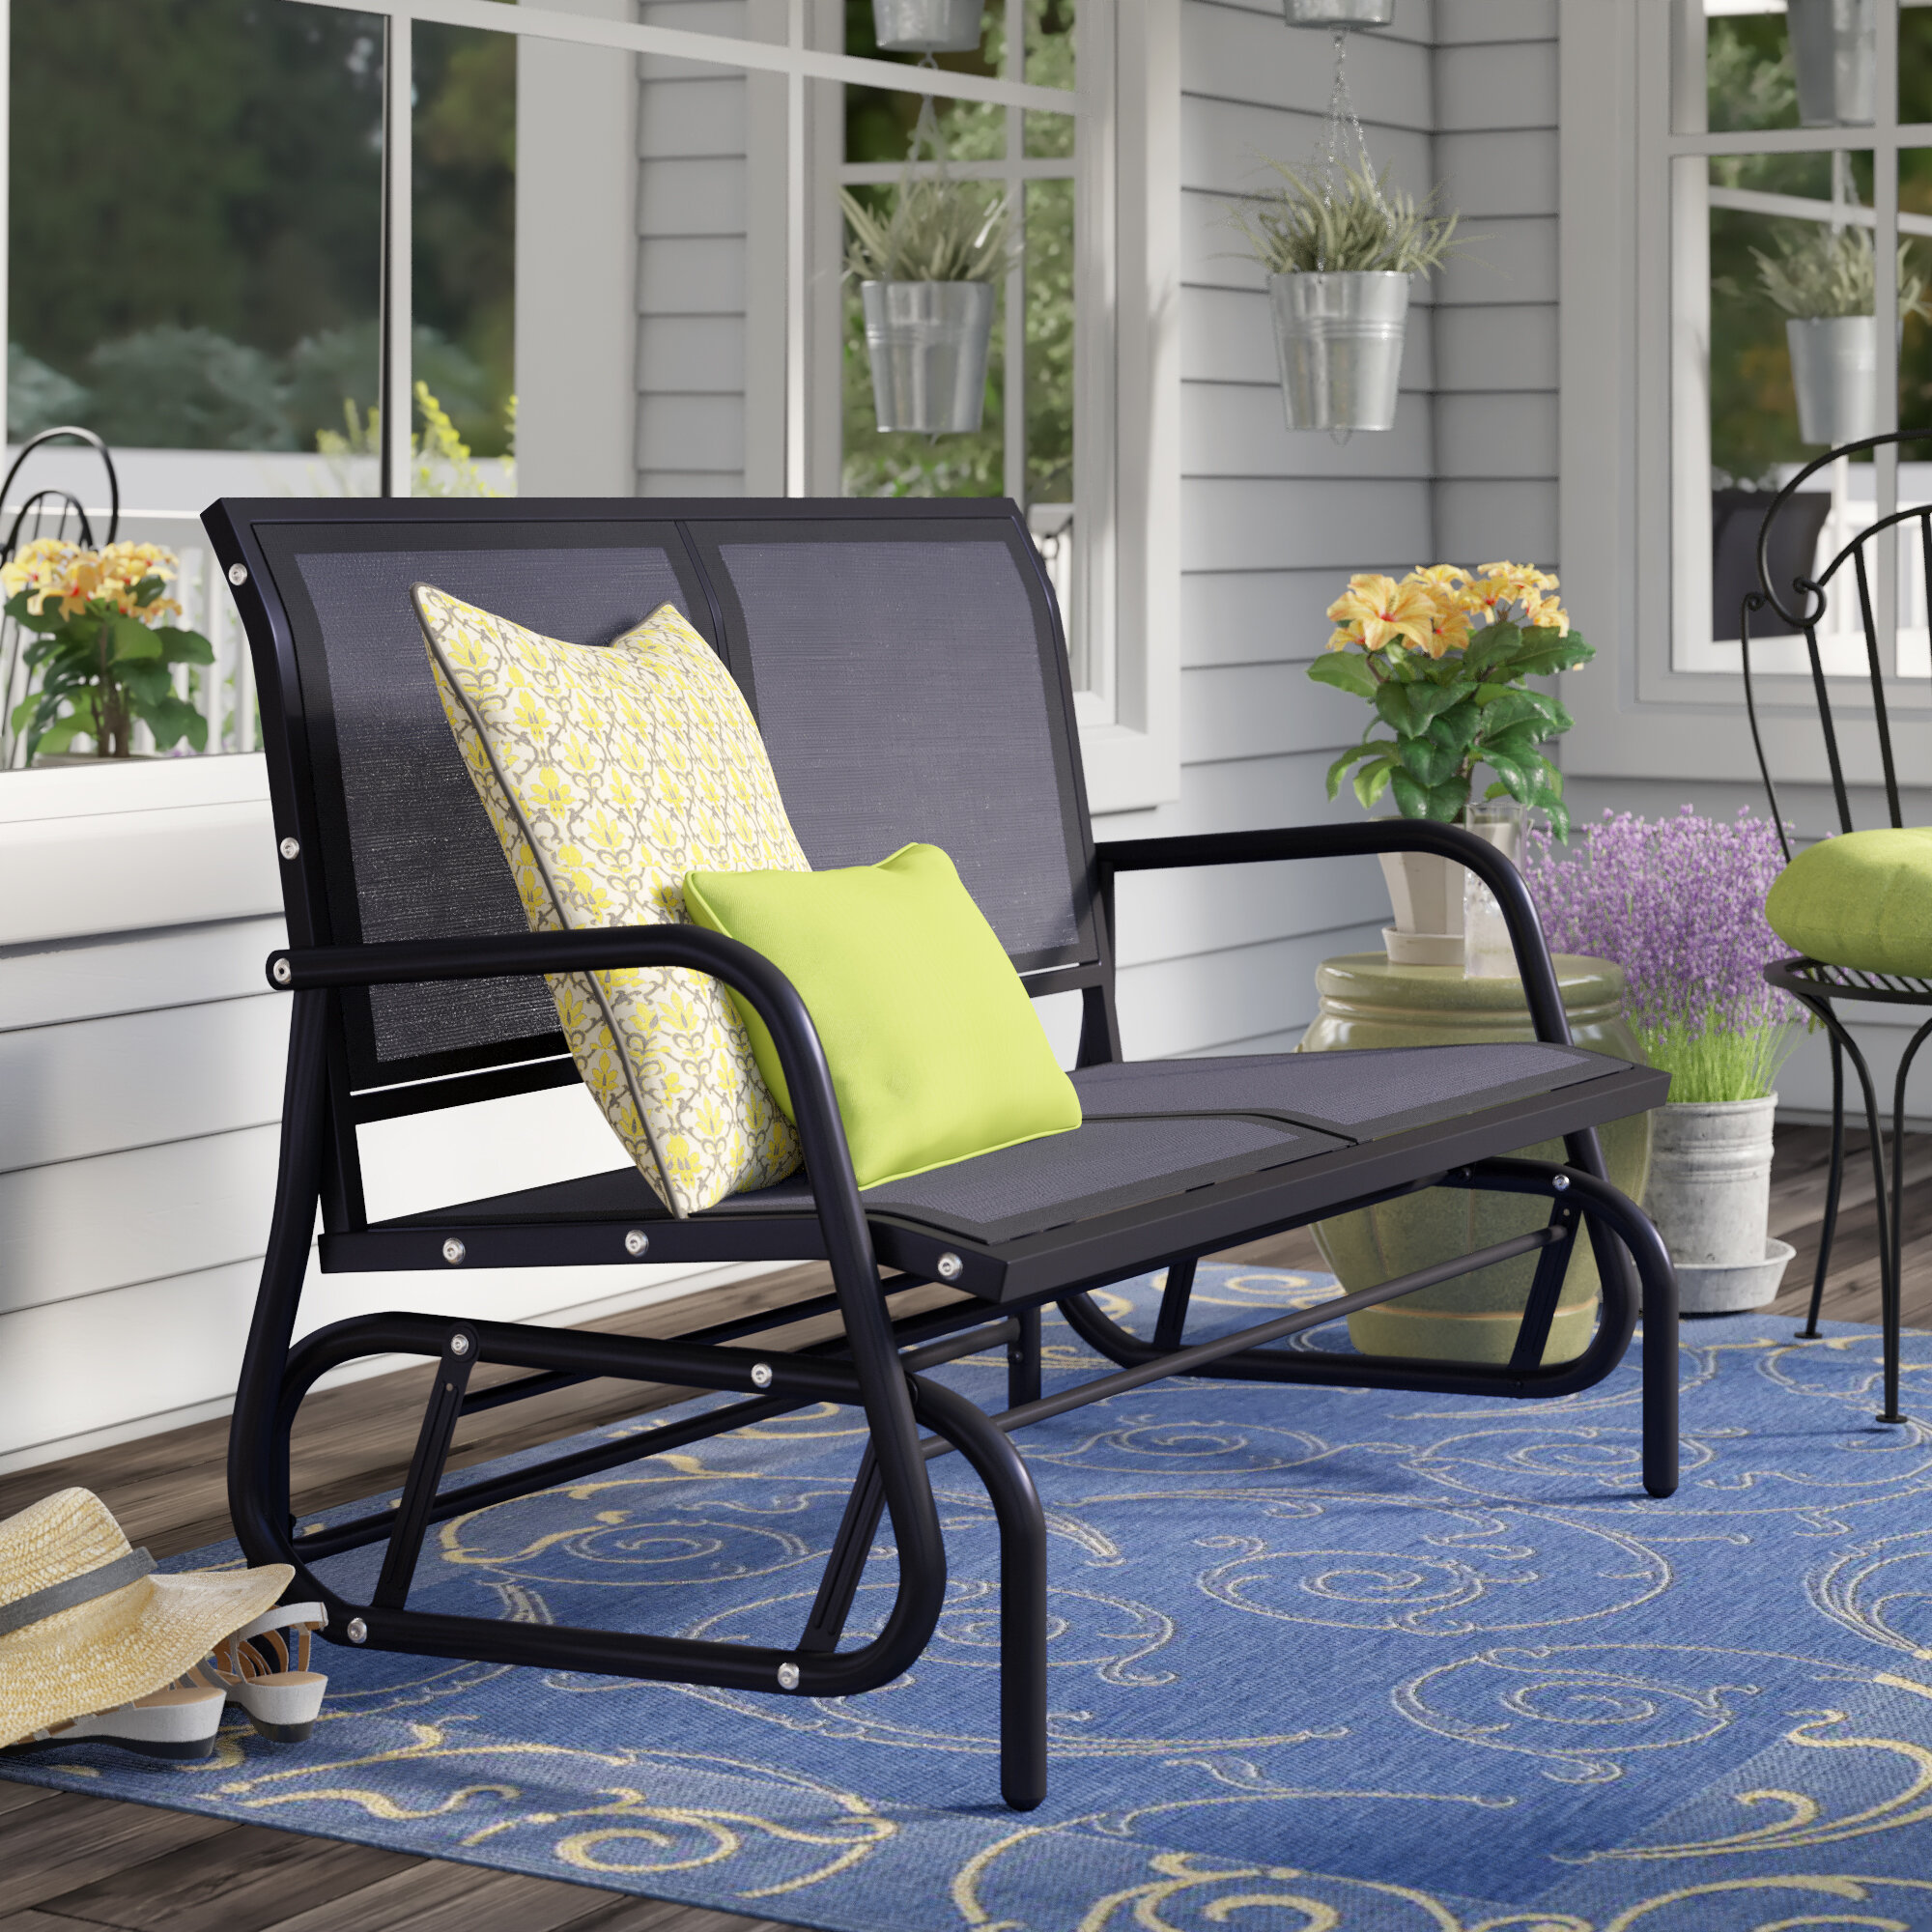 Patio Furniture Round Rock Tx.Outdoor Metal Sofa Glider Wayfair